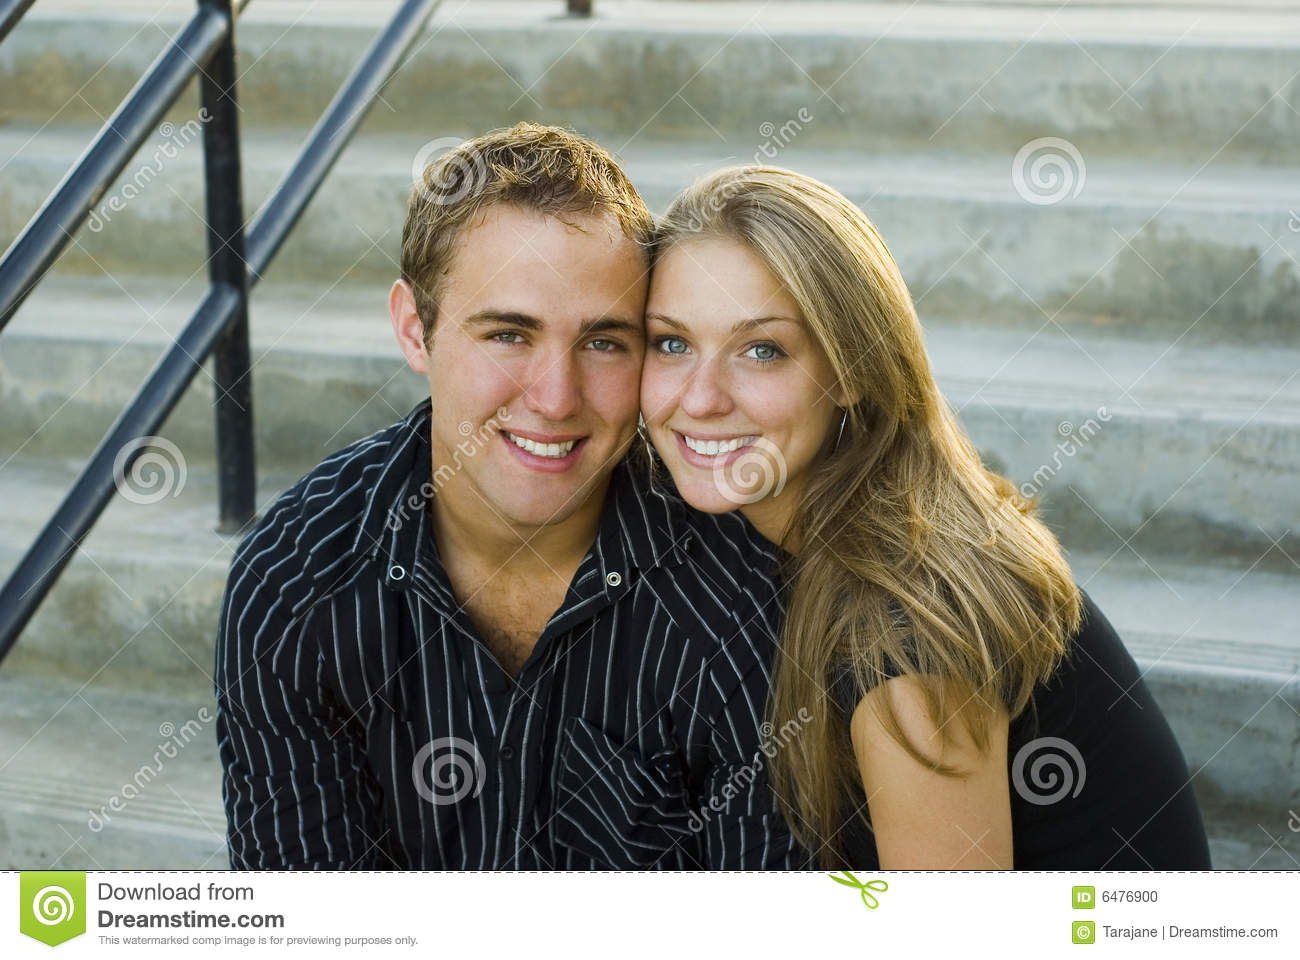 Cute Couple on the Stairs